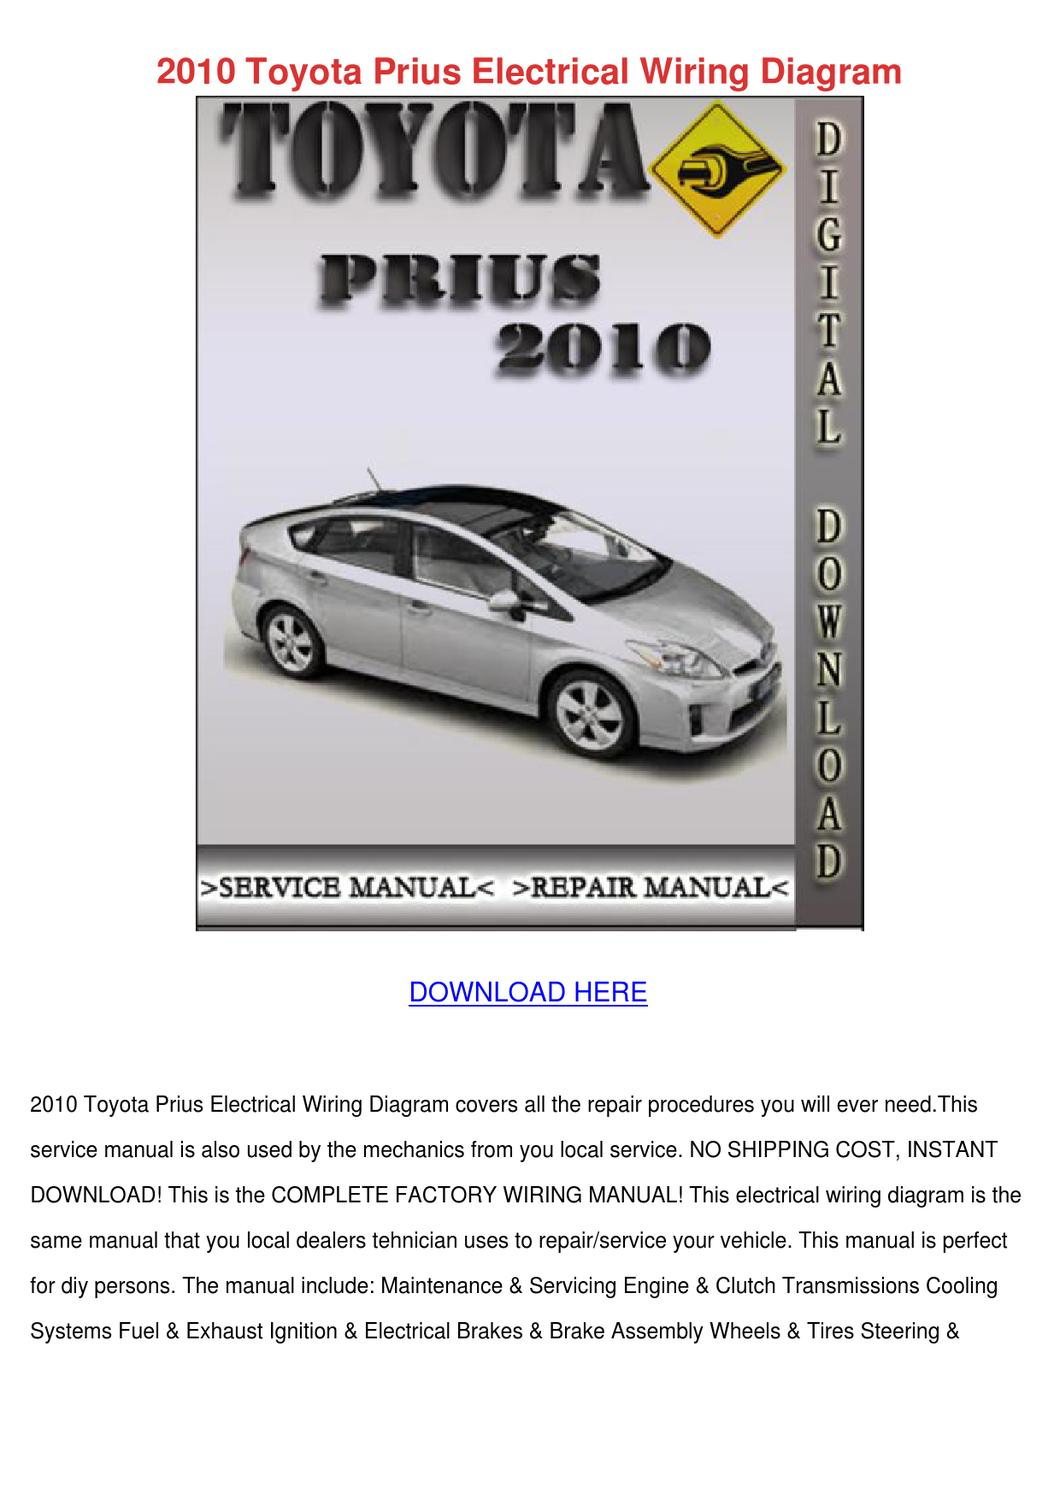 hight resolution of 2010 toyota prius electrical wiring diagram by wardtoledo issuu 2007 toyota prius wiring diagram toyota prius wiring diagram